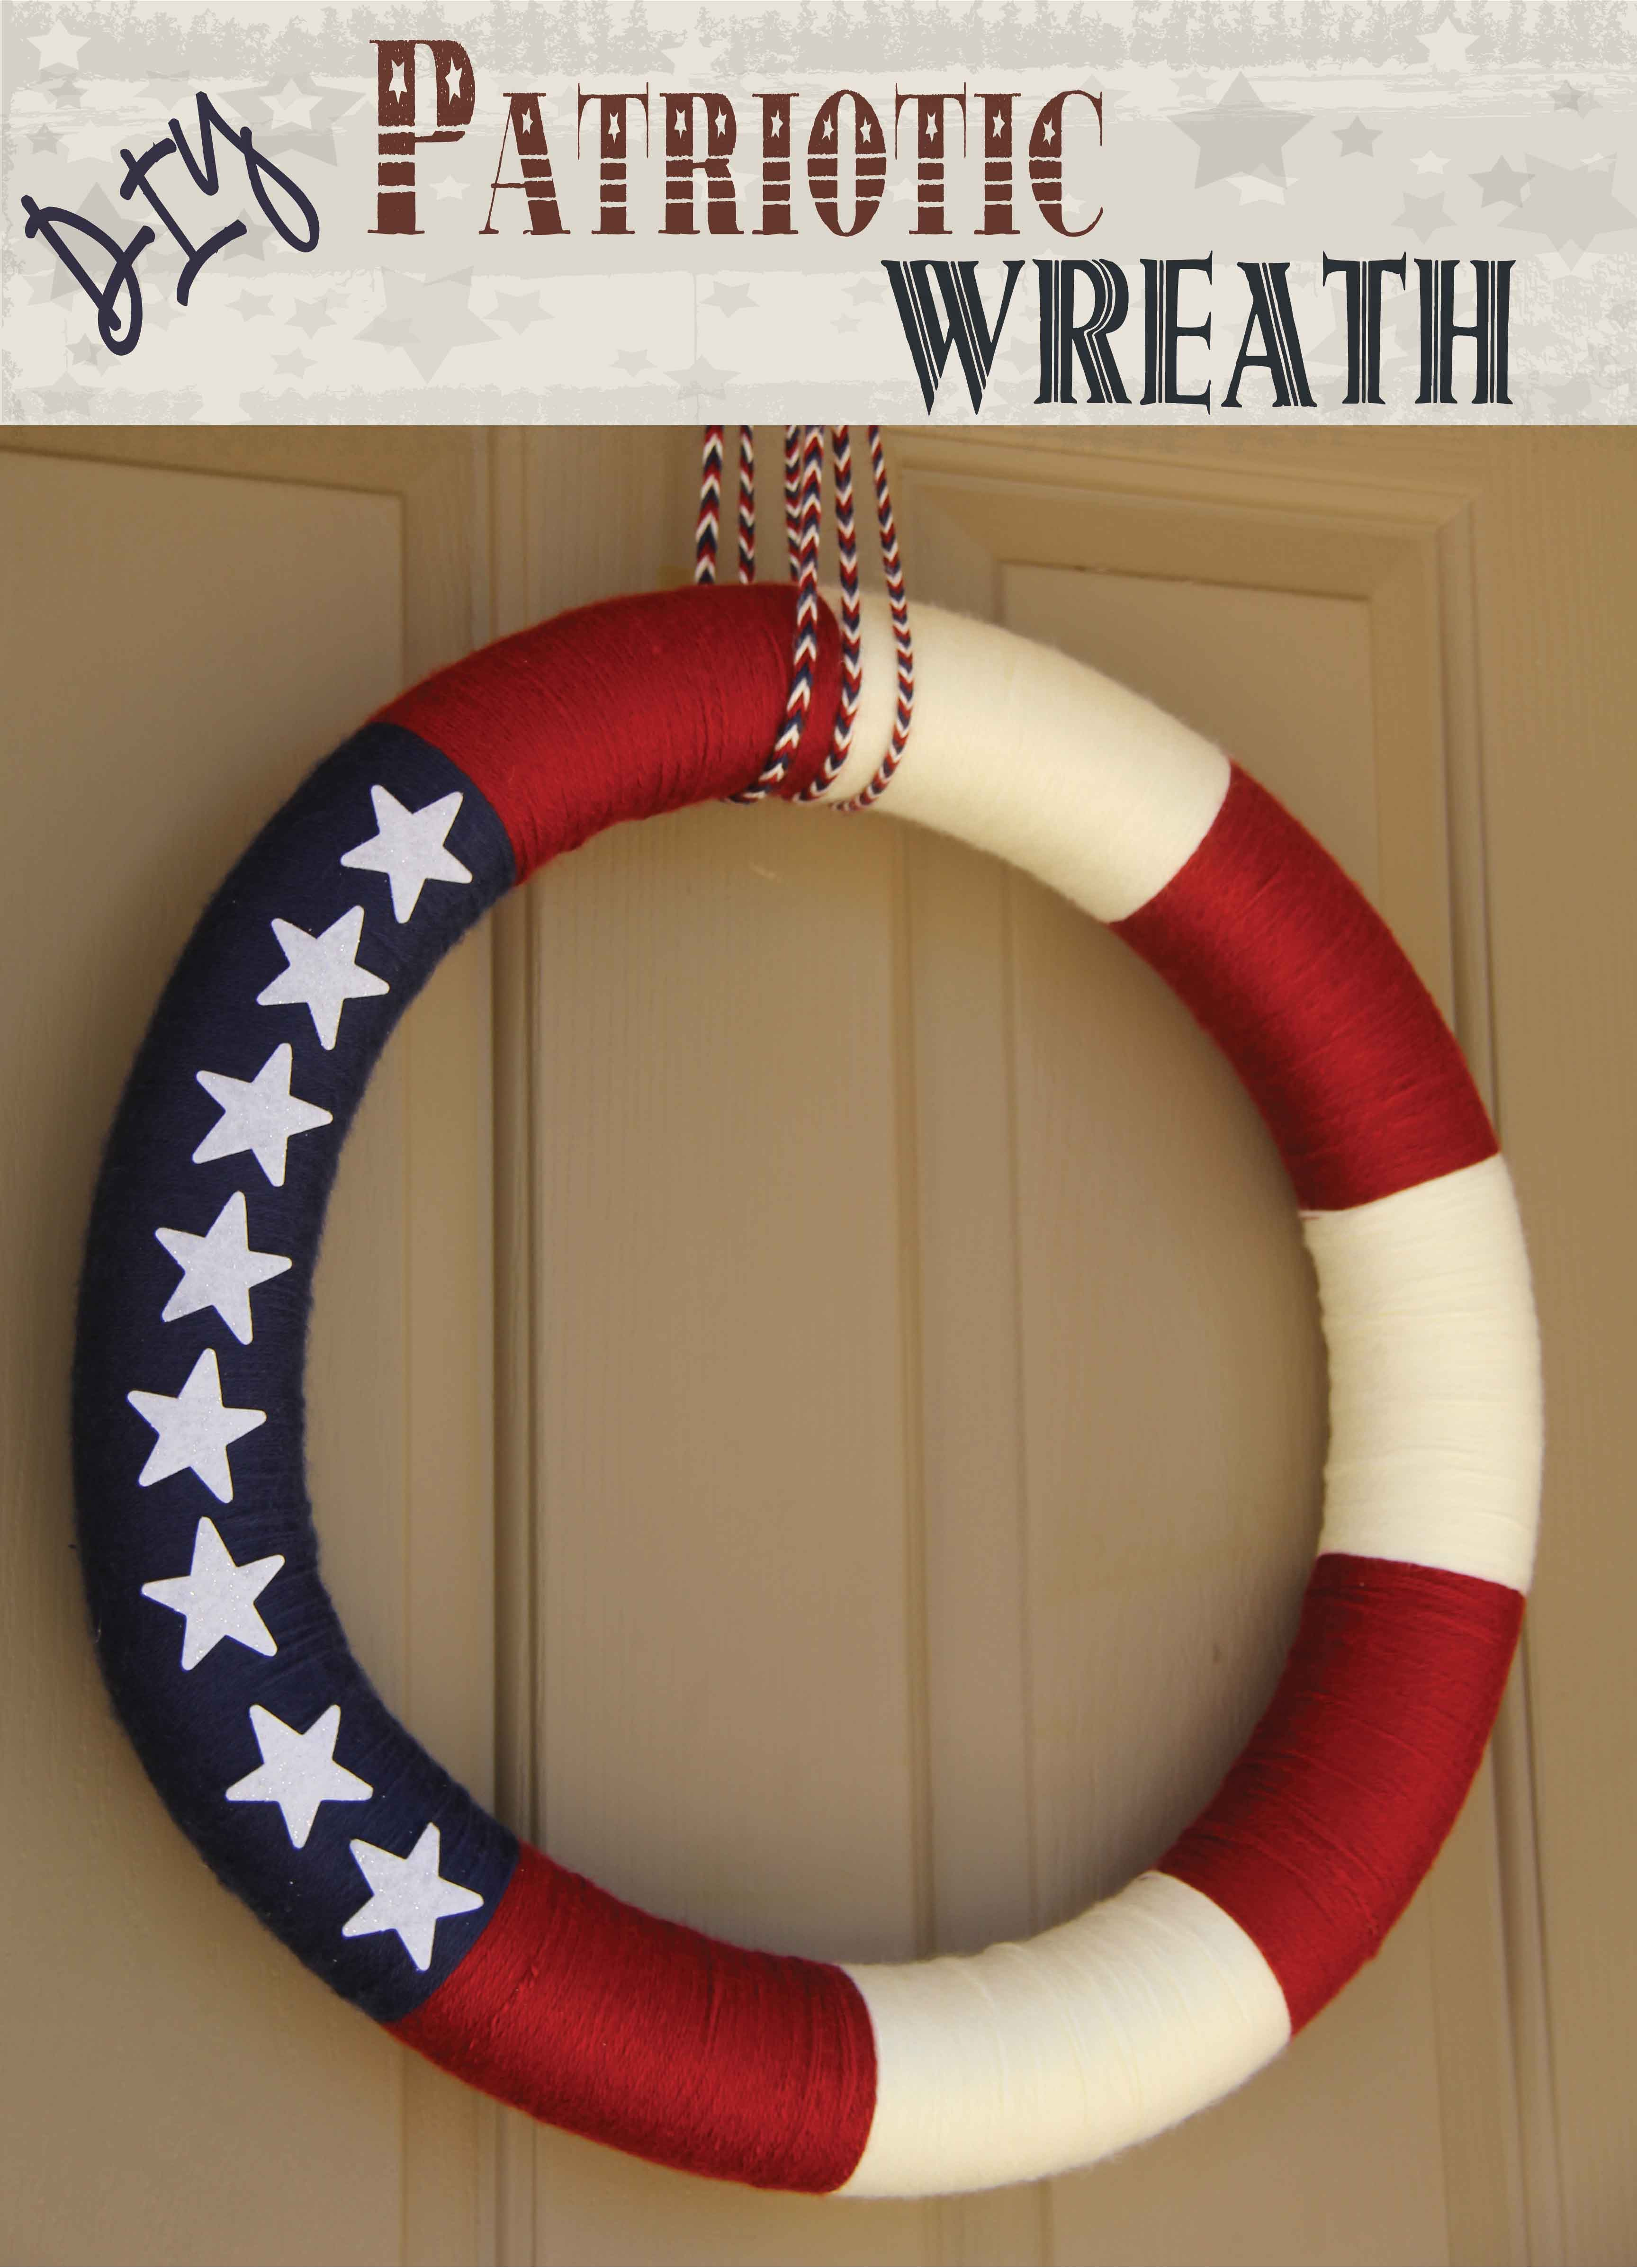 DIY #Patriotic Wreath - I made this #wreath in a few hours with a pool noodle, yarn and some foam stars. Easy peasy! Tested and reviewed by one of the 3 crazy sisters at: http://www.thisgrandmaisfun.com